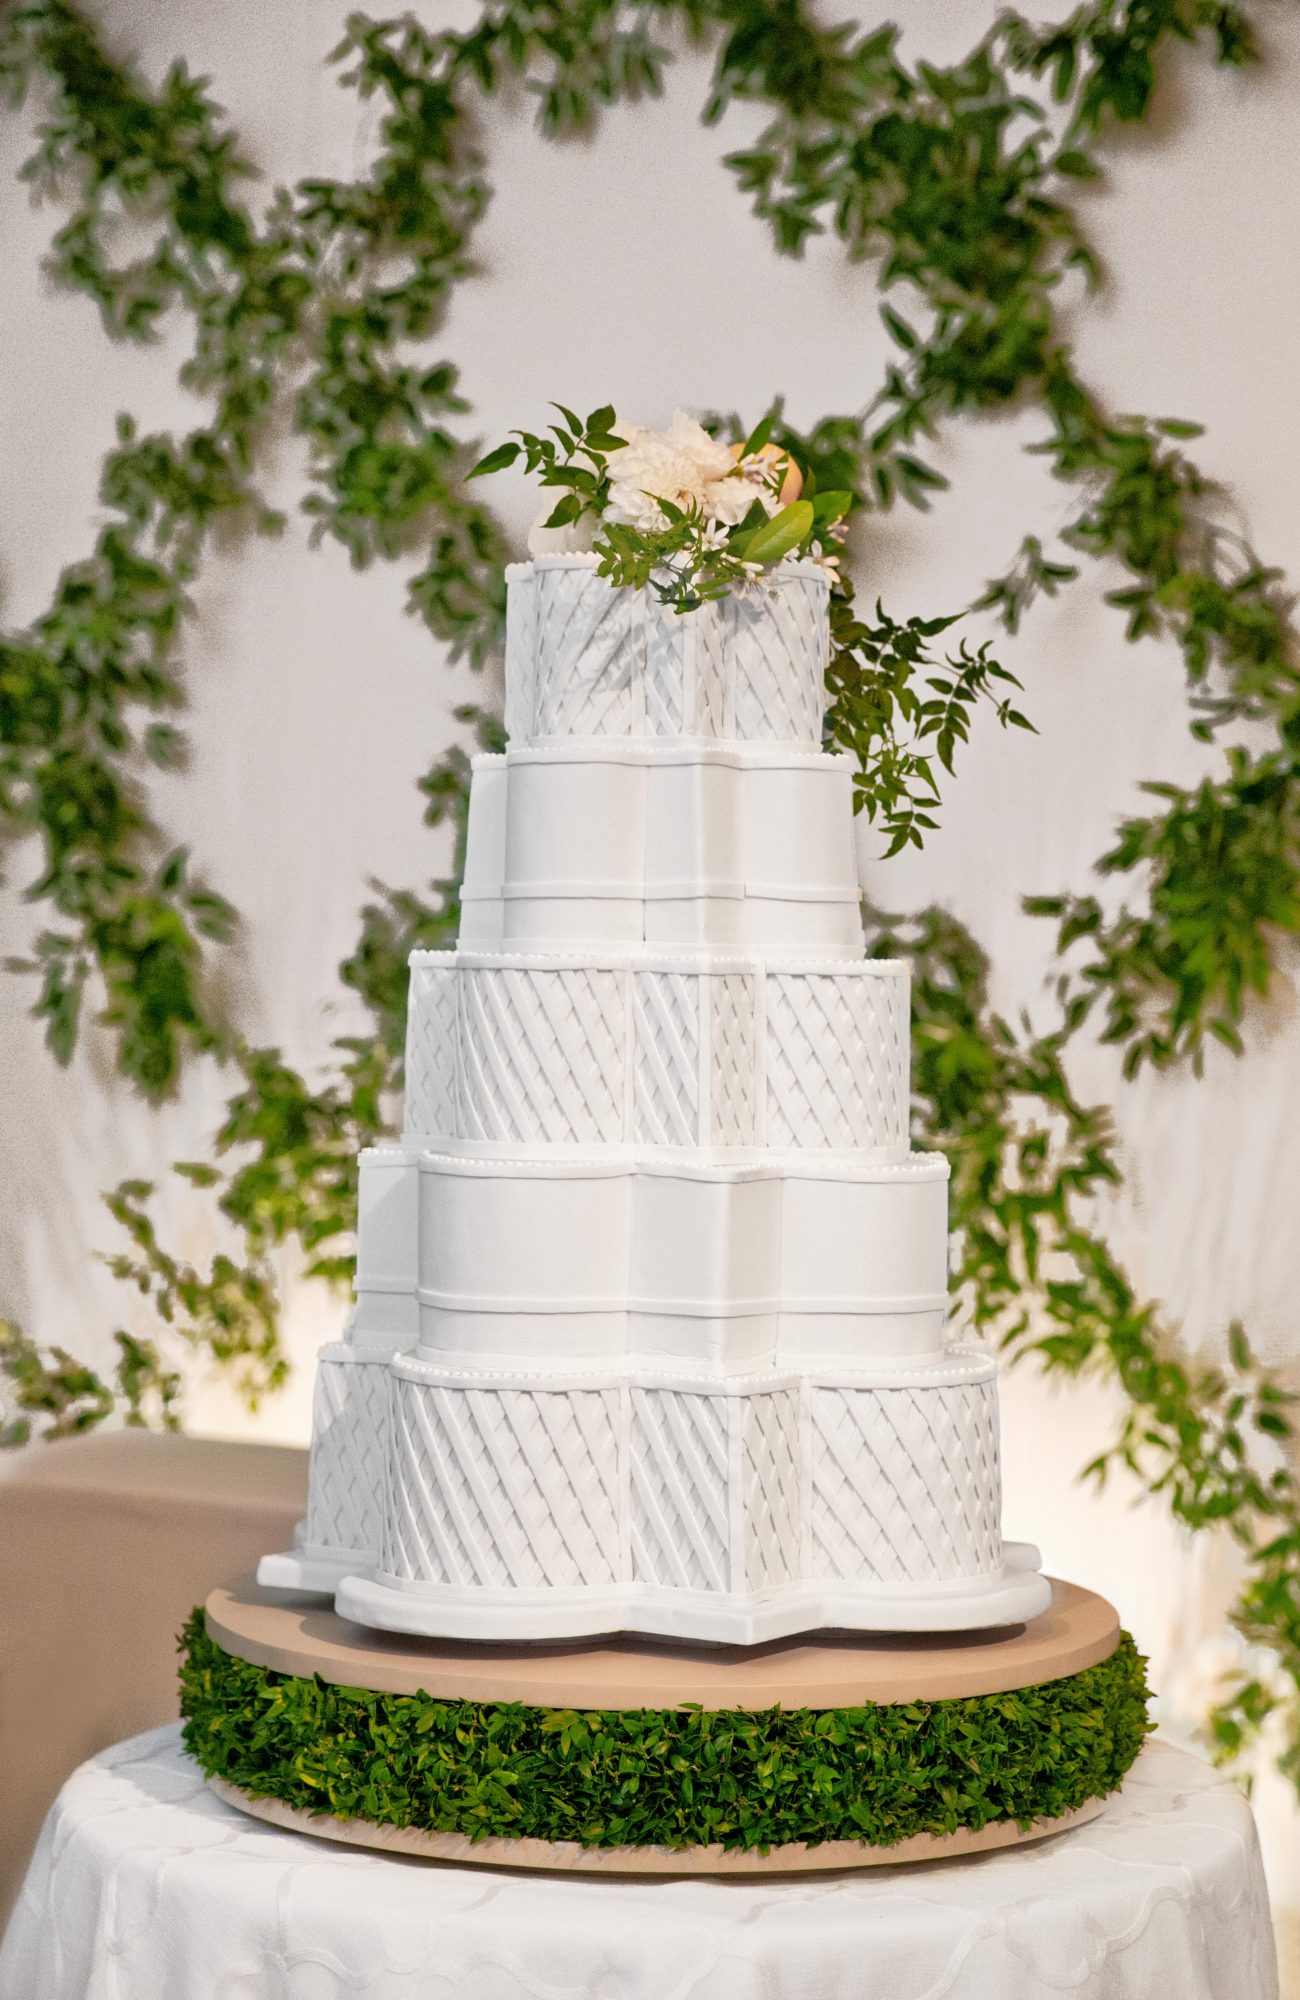 An Elegant, All-White Cake